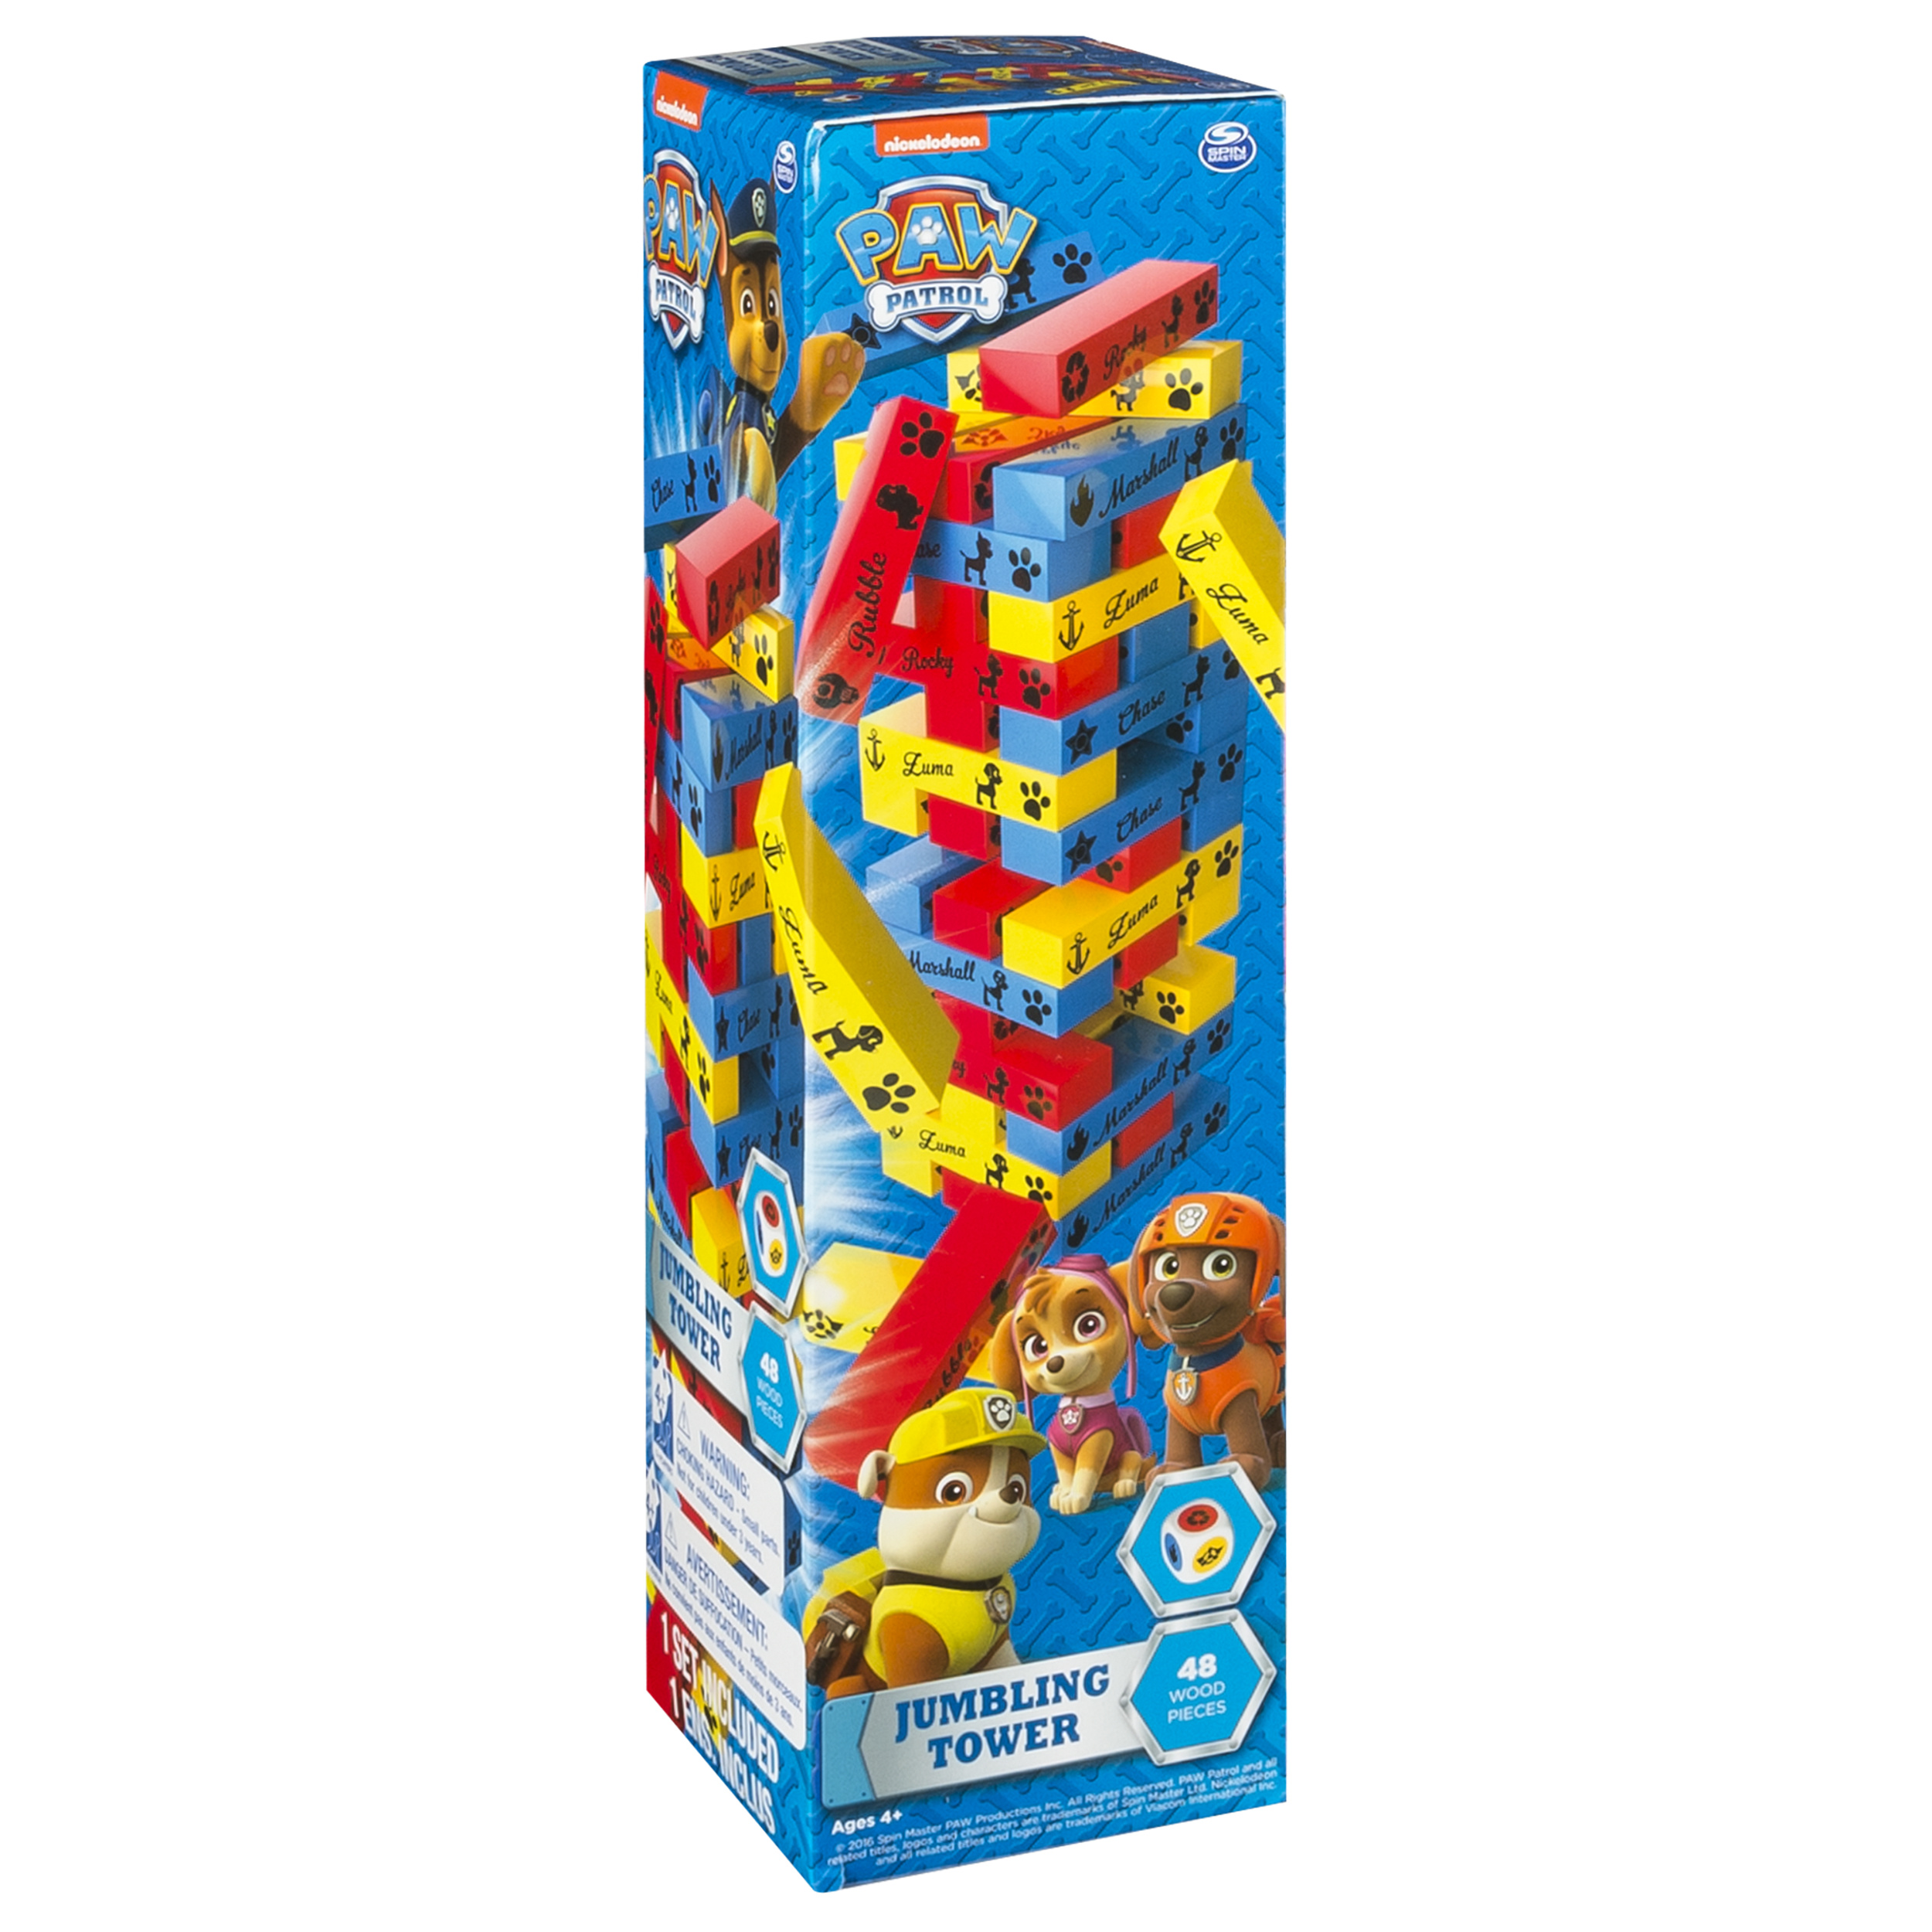 Nickelodeon's Paw Patrol - Jumbling Tower Game